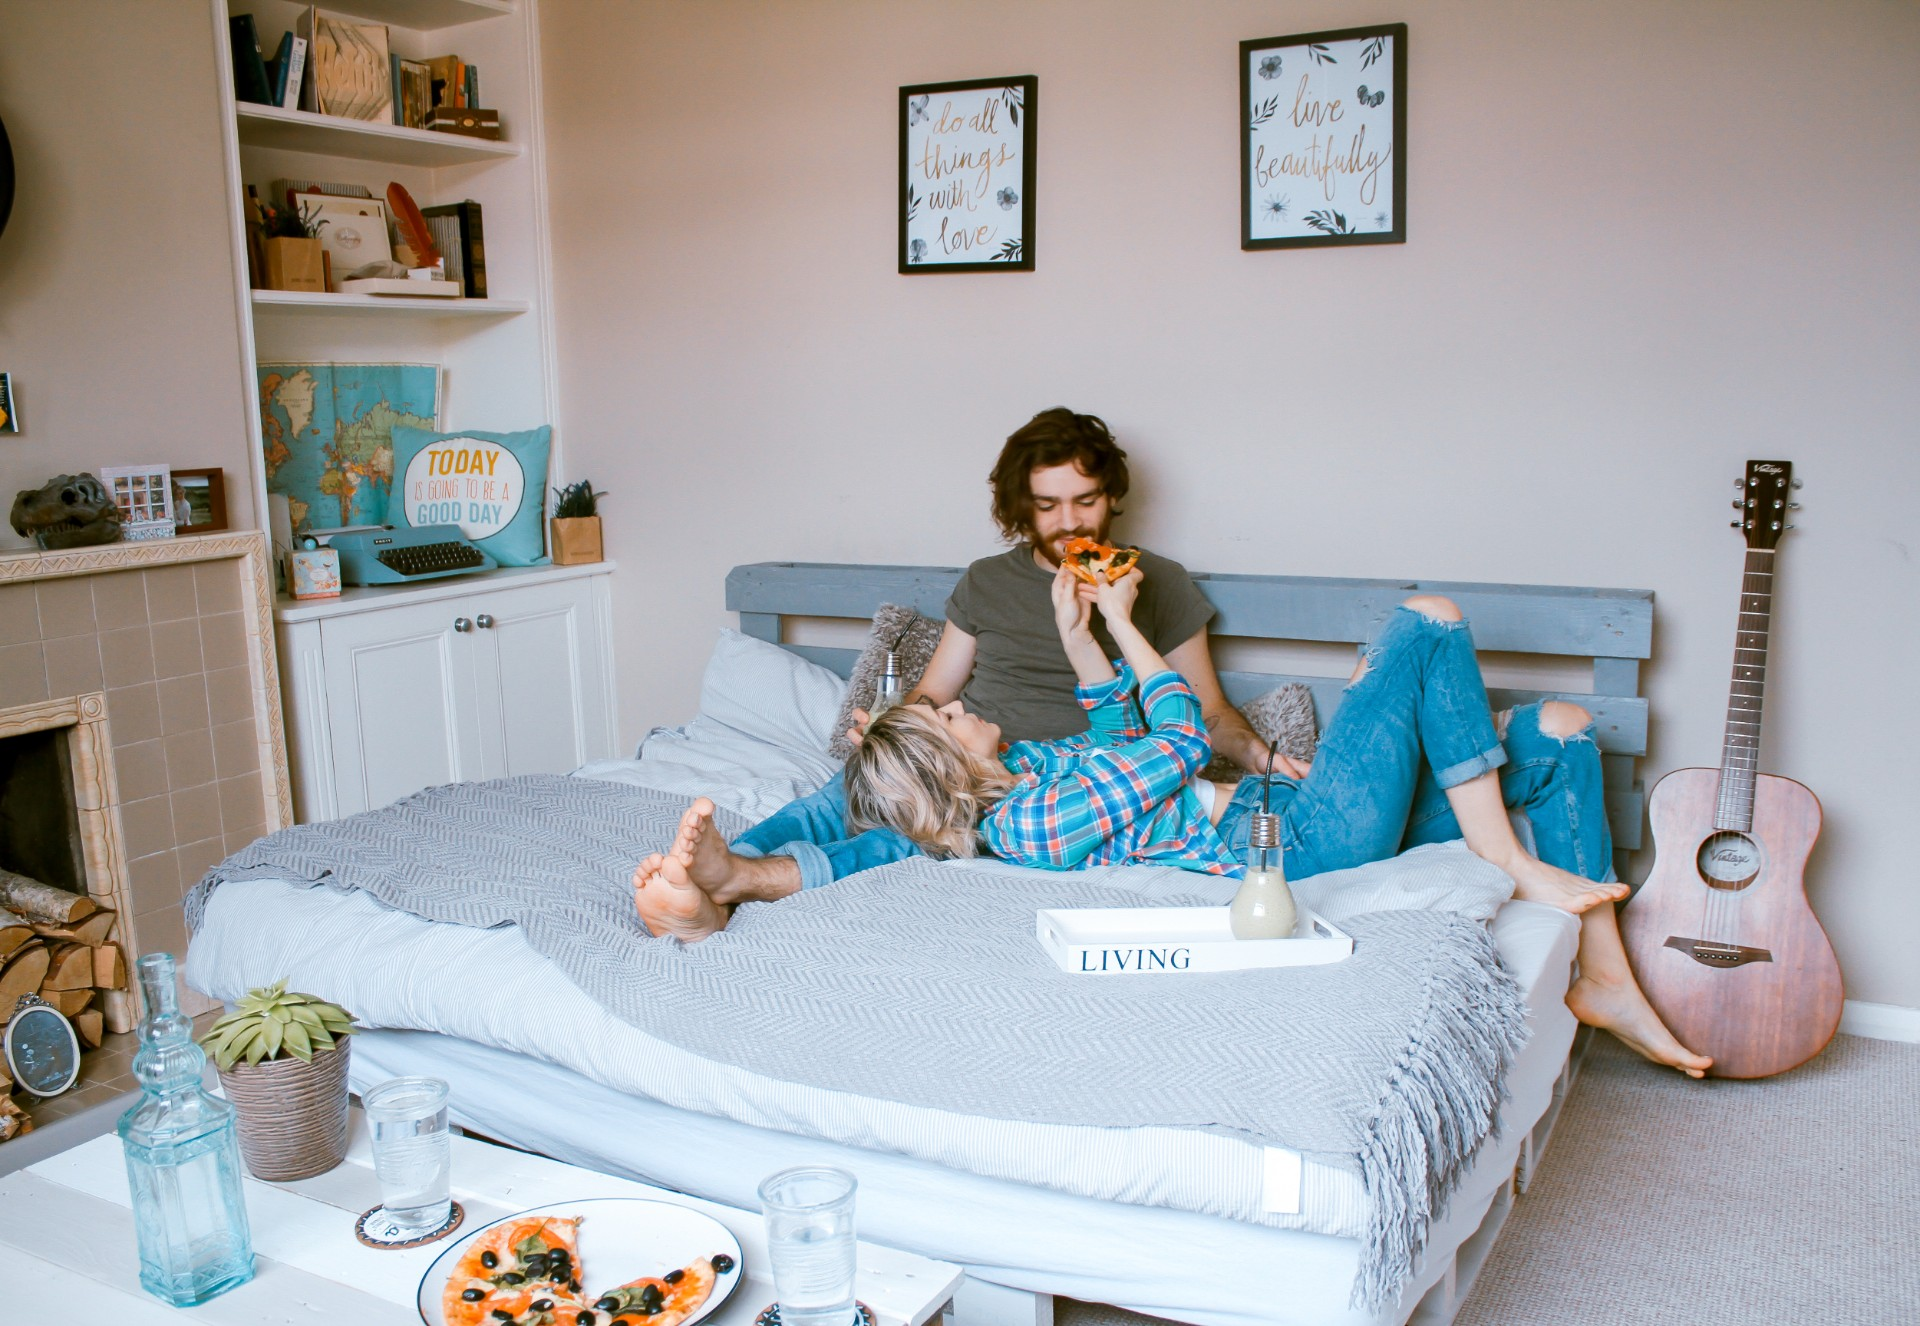 Man and woman a couple lying in bed and snacking on food bedroom with queen size bed guitar pizza plant fireplace and prints on wall Long distance relationship tips. Long distance relationship advice. Click through to read more...